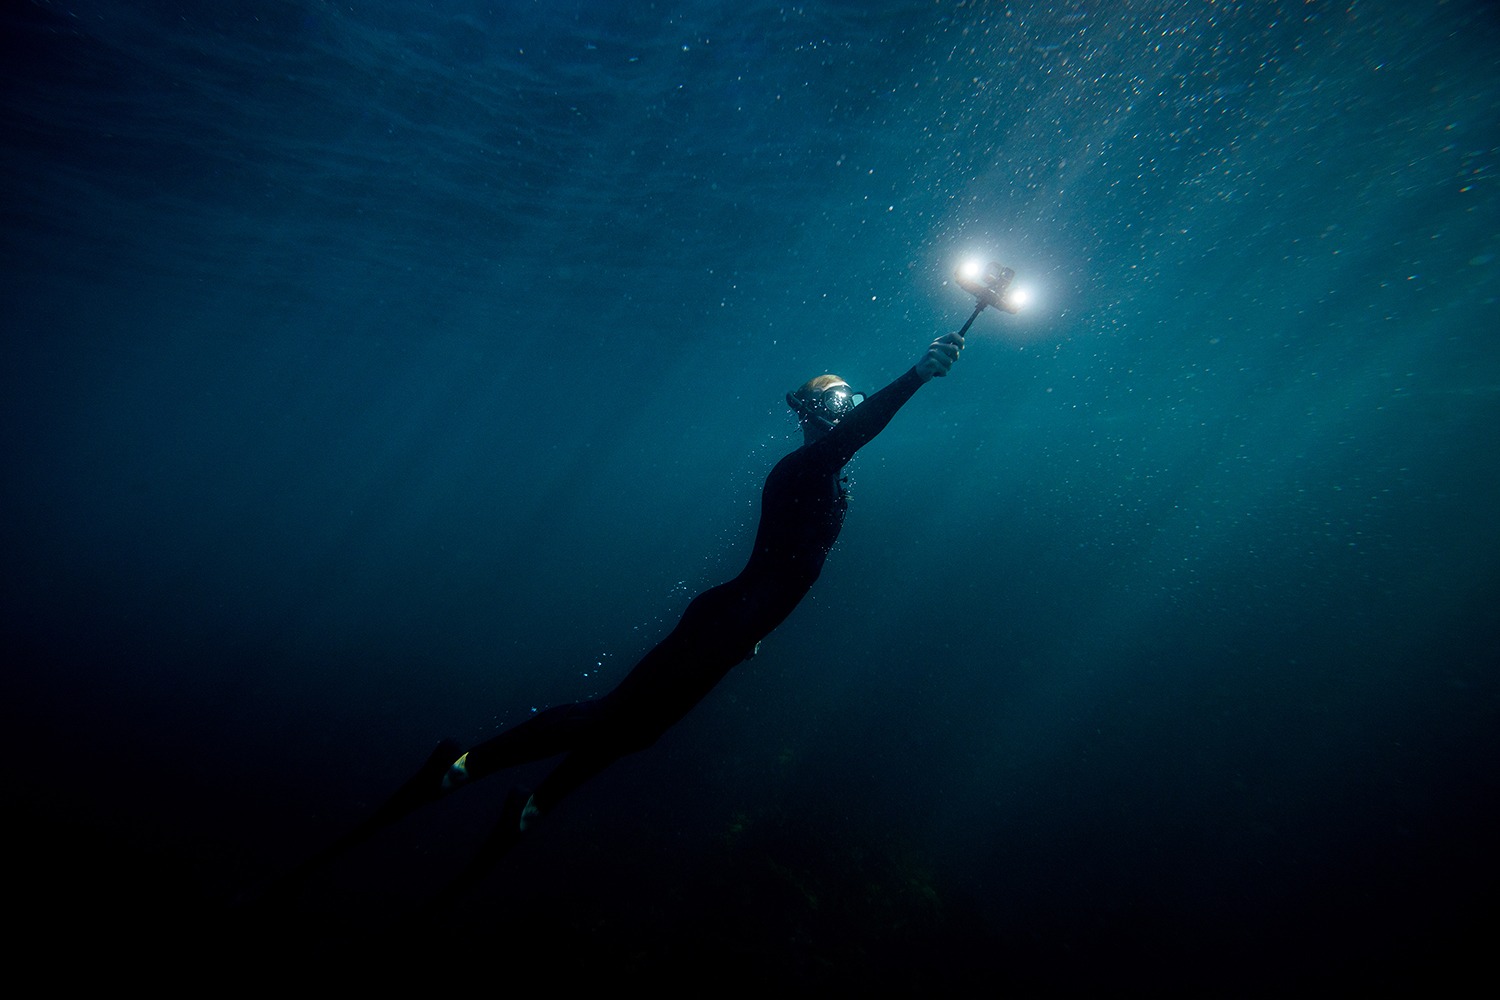 man diving swimming back up to ocean surface holding lume cube 2.0 light